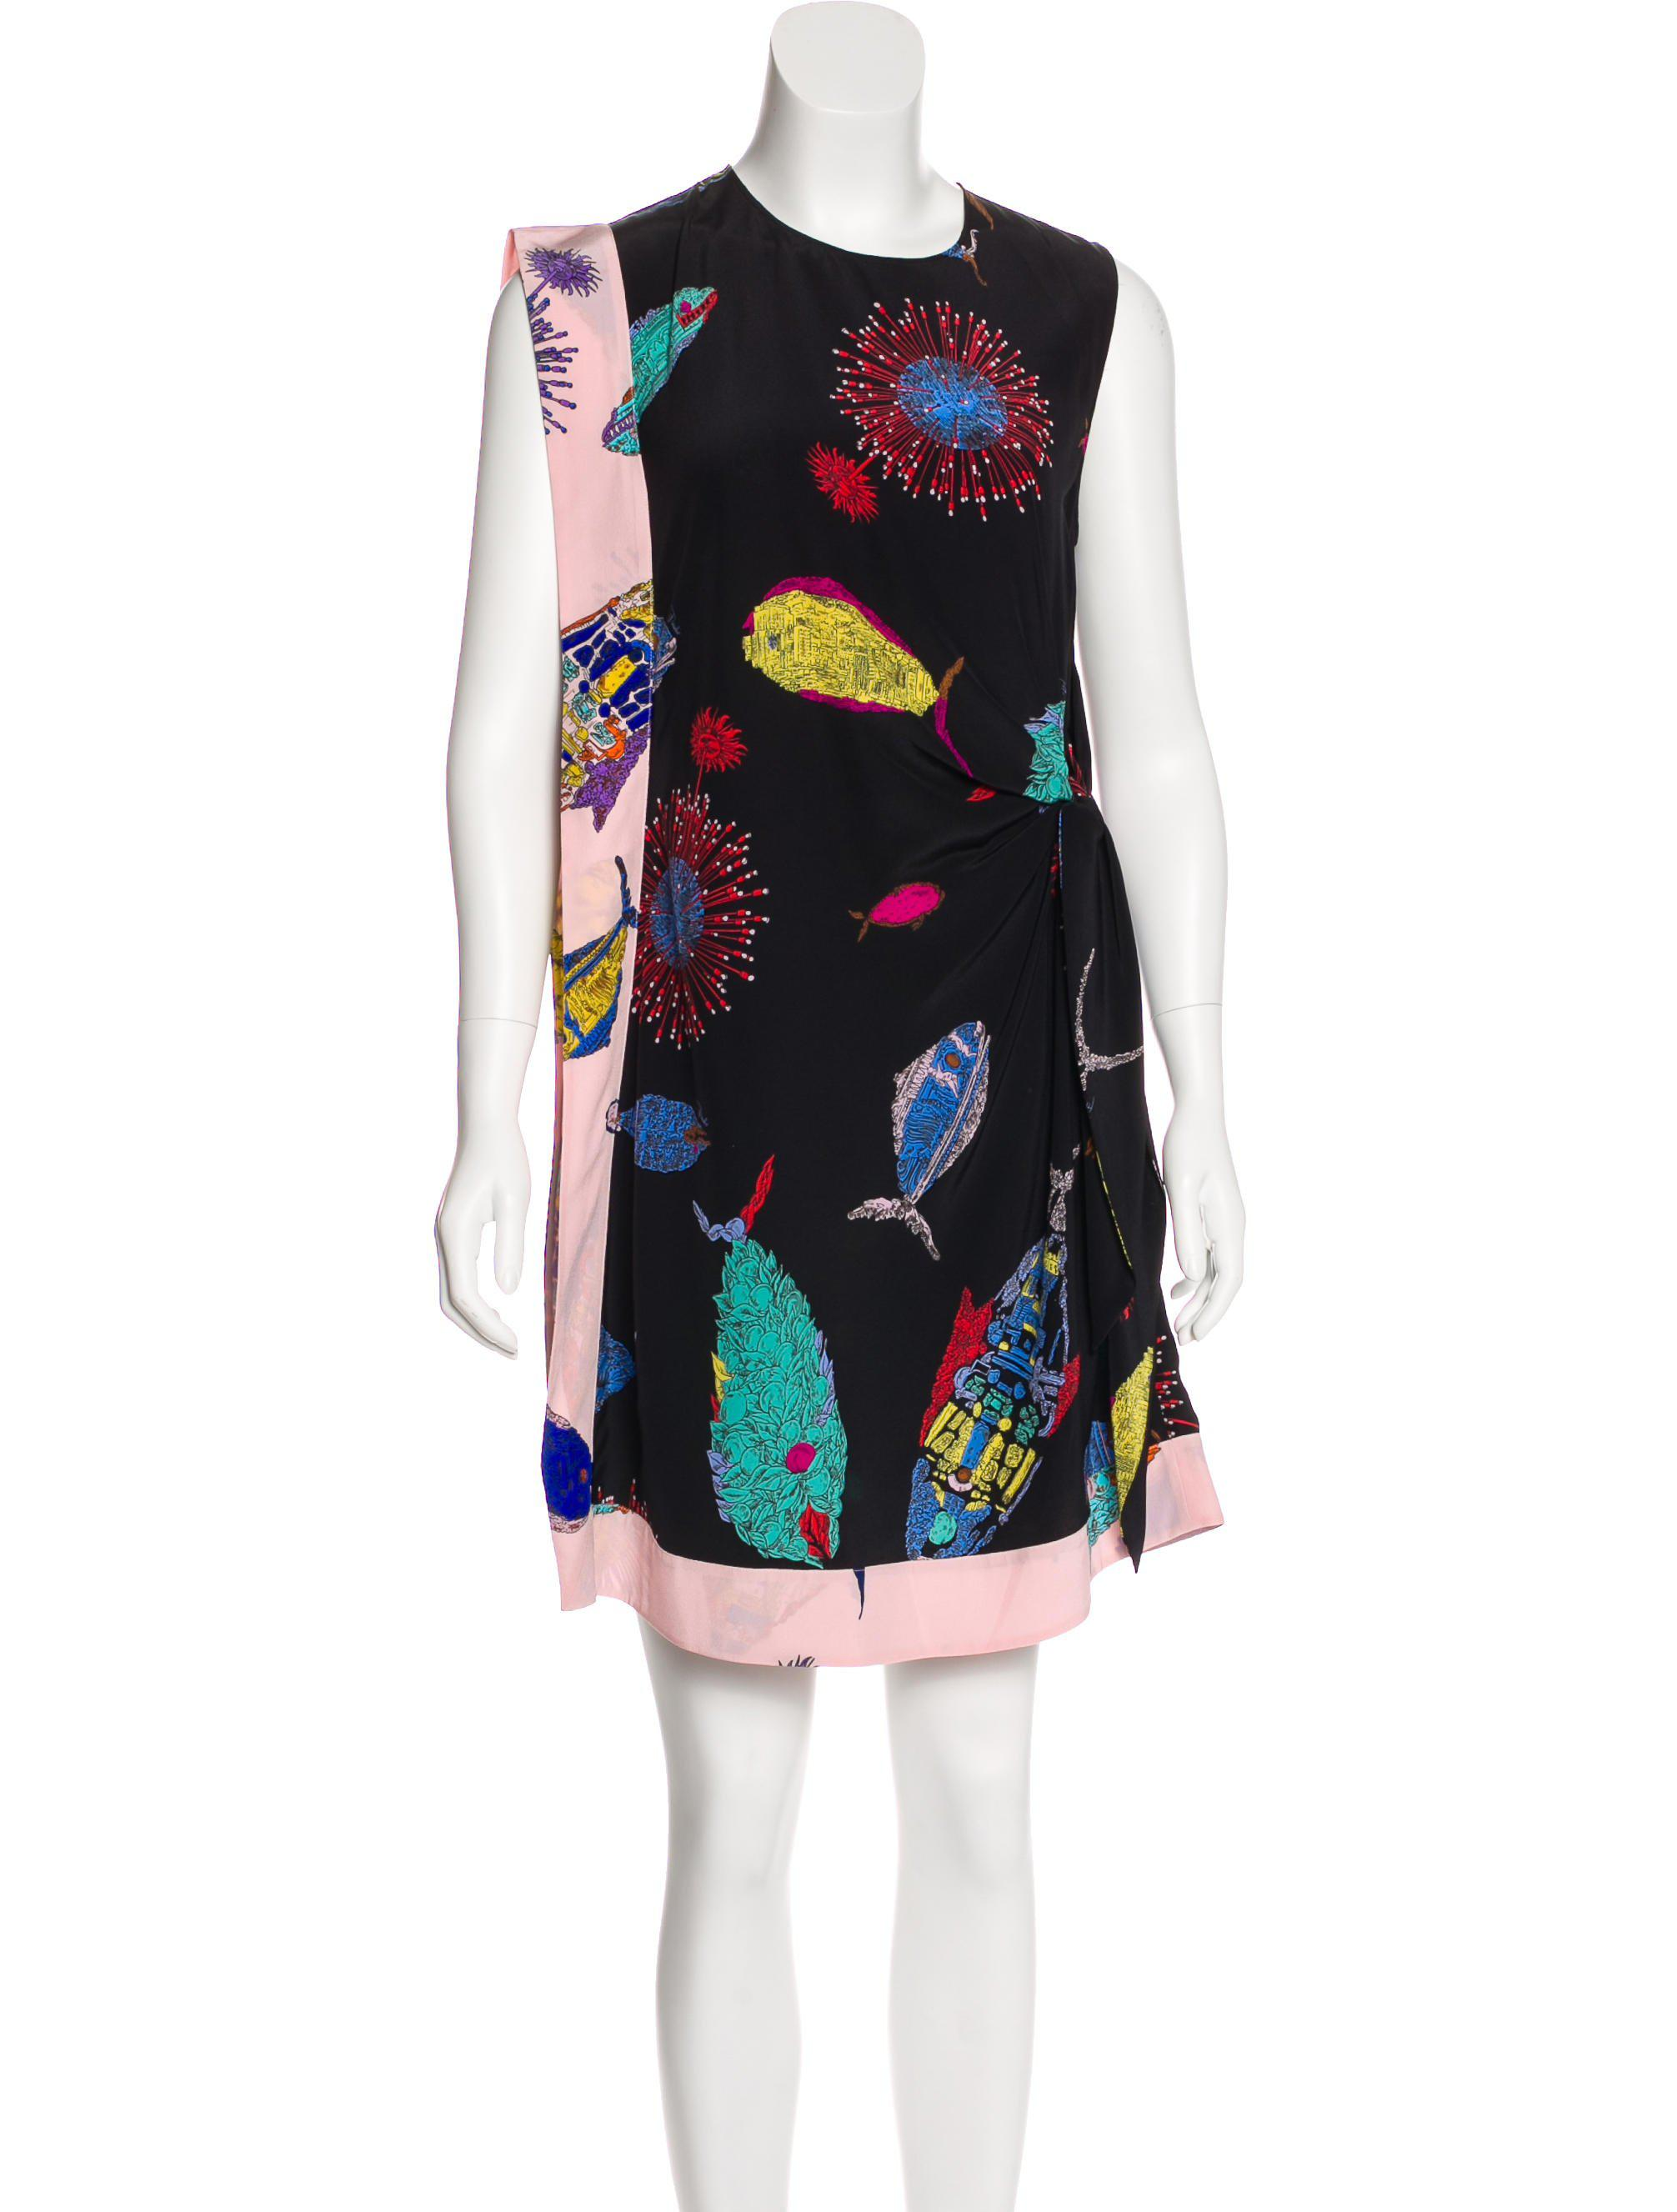 Outlet Lowest Price Emilio Pucci Woman Printed Silk Mini Dress Army Green Size 40 Emilio Pucci Free Shipping Top Quality Cost Sale Professional 5RFznbTWU